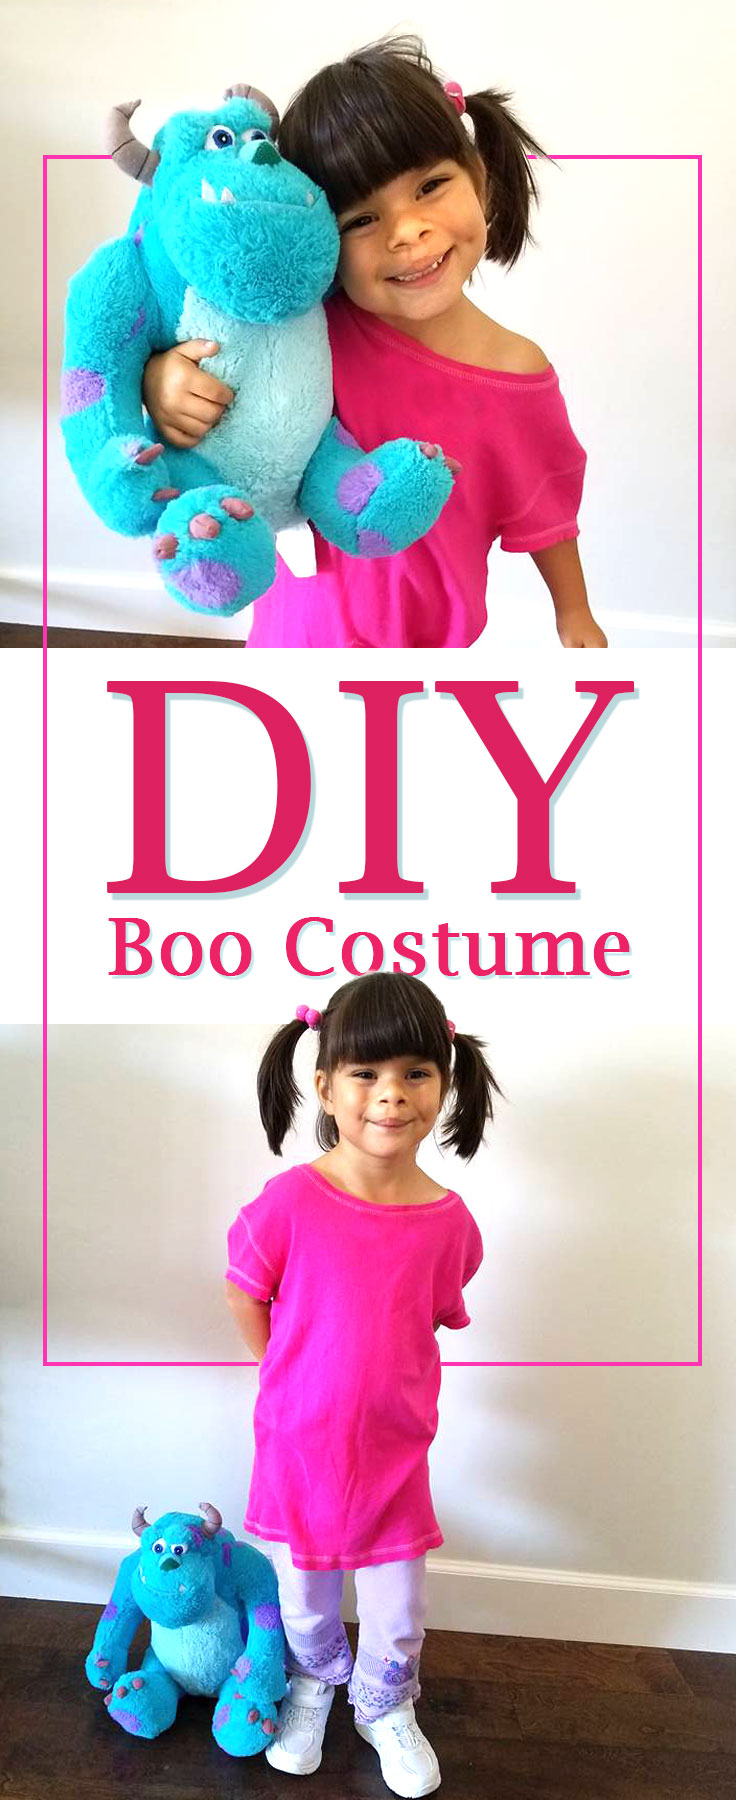 DIY Boo Costume